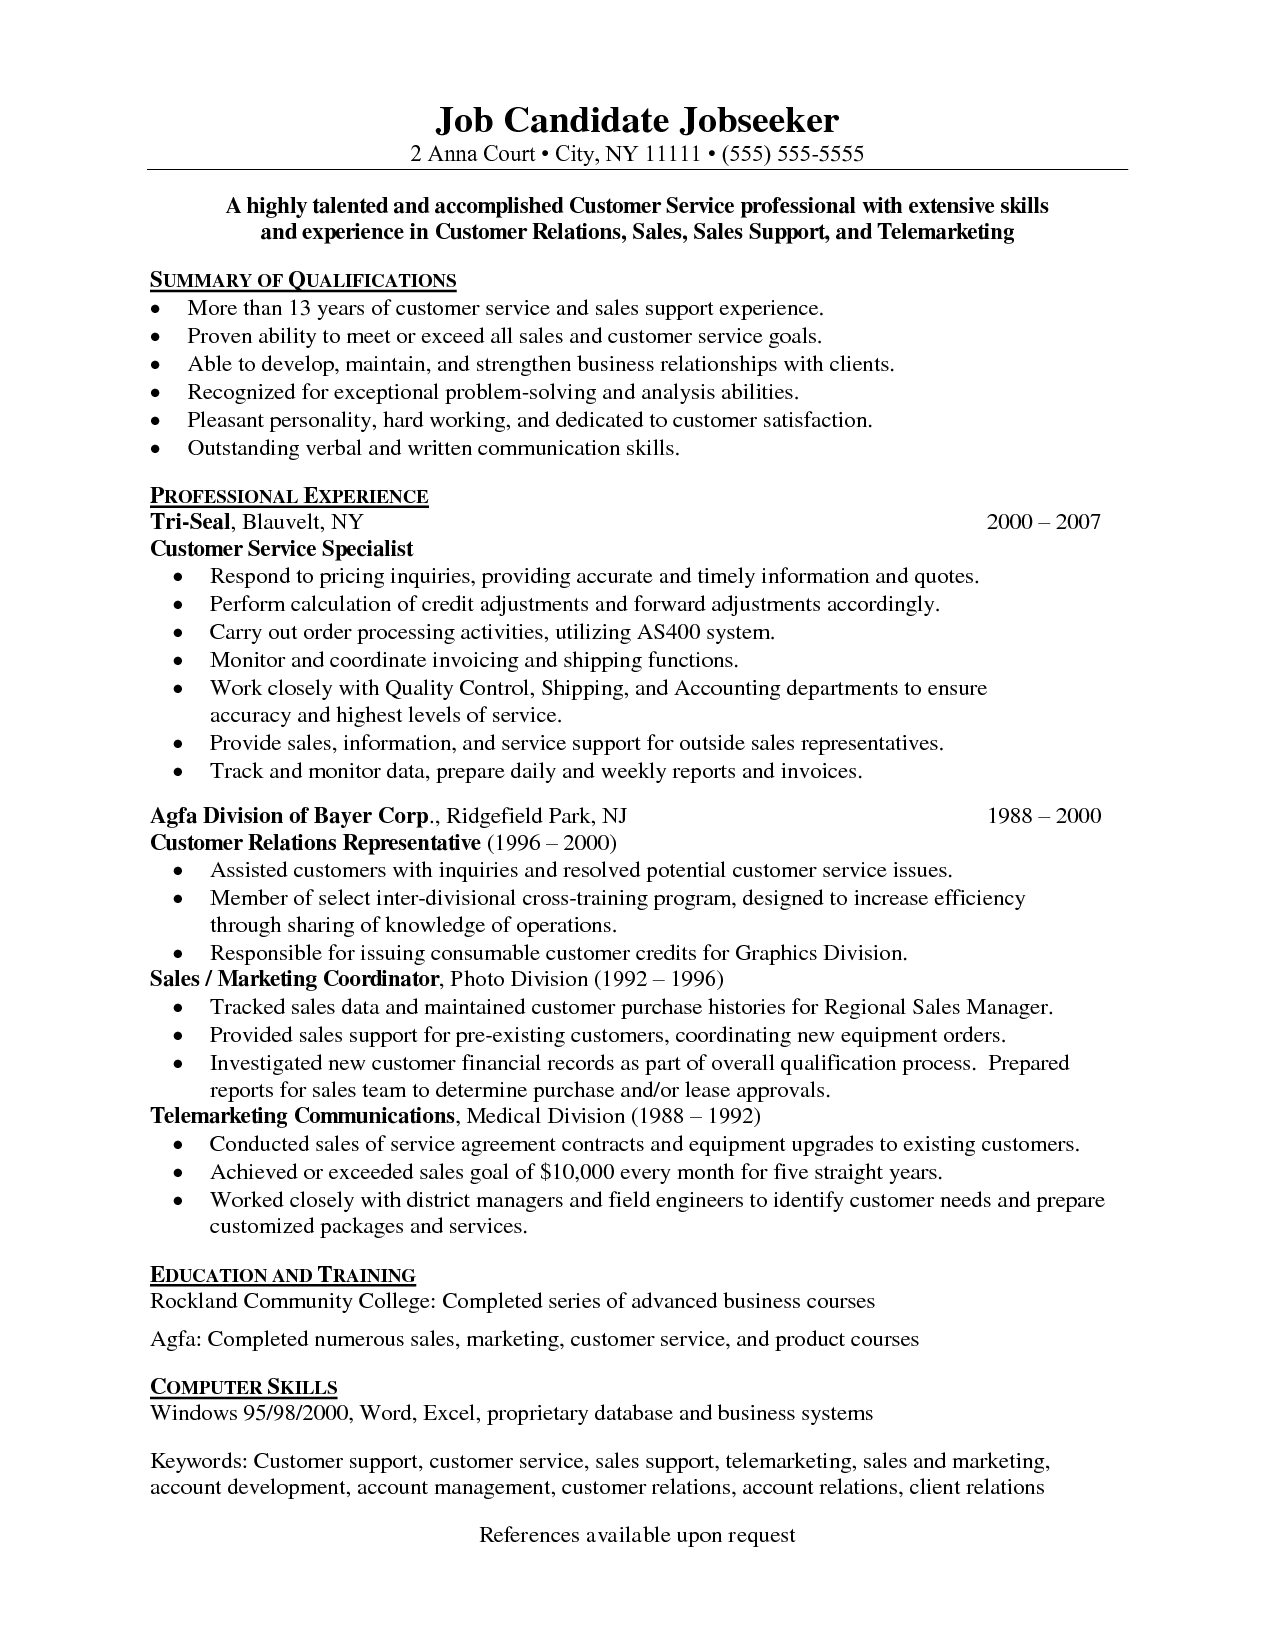 Opposenewapstandardsus  Personable Customer Service Resume Format  Roiinvestingcom With Interesting Customer Service Resume Format  With Astonishing Objectives On Resume Also Cover Letter And Resume In Addition Examples Of Objectives For Resumes And Resume Accent As Well As Resume Examples For Students Additionally Rn Resume Examples From Roiinvestingcom With Opposenewapstandardsus  Interesting Customer Service Resume Format  Roiinvestingcom With Astonishing Customer Service Resume Format  And Personable Objectives On Resume Also Cover Letter And Resume In Addition Examples Of Objectives For Resumes From Roiinvestingcom